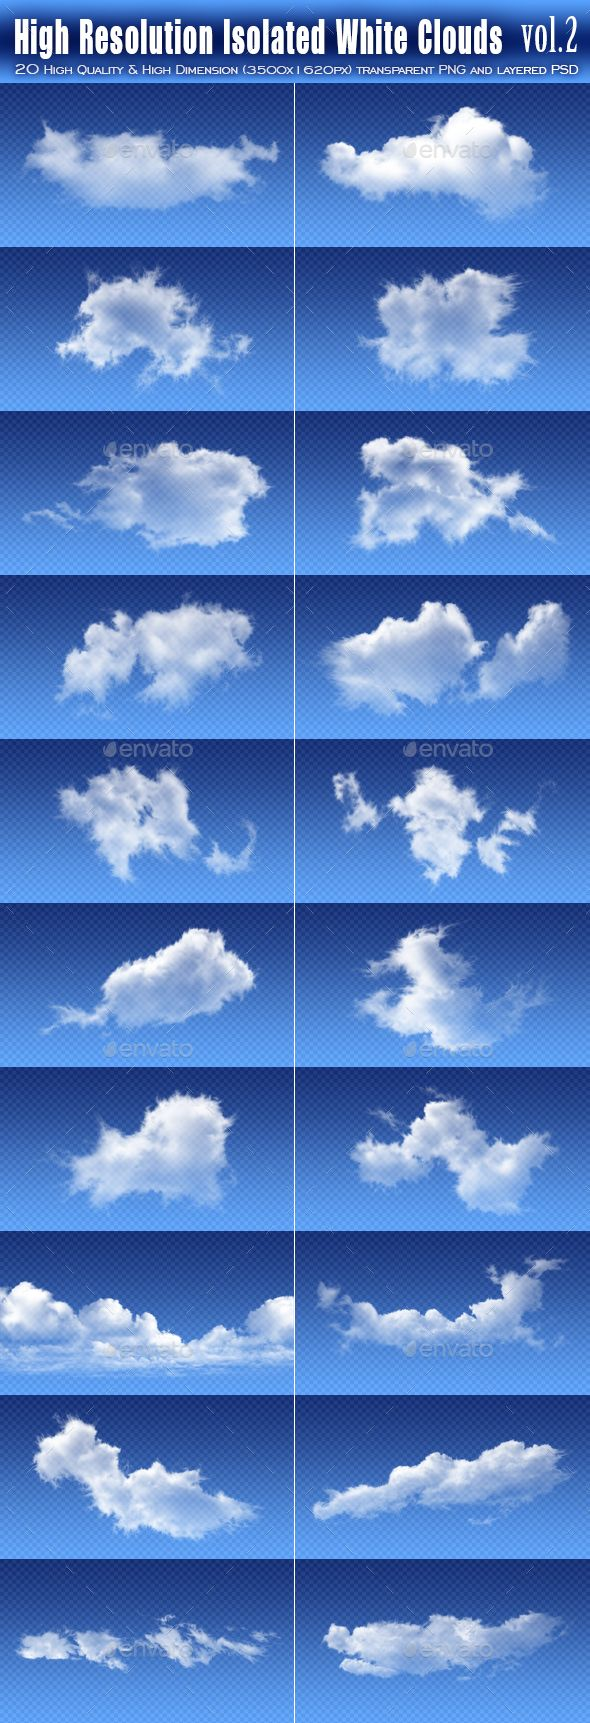 20 High Resolution Isolated White Clouds vol.2